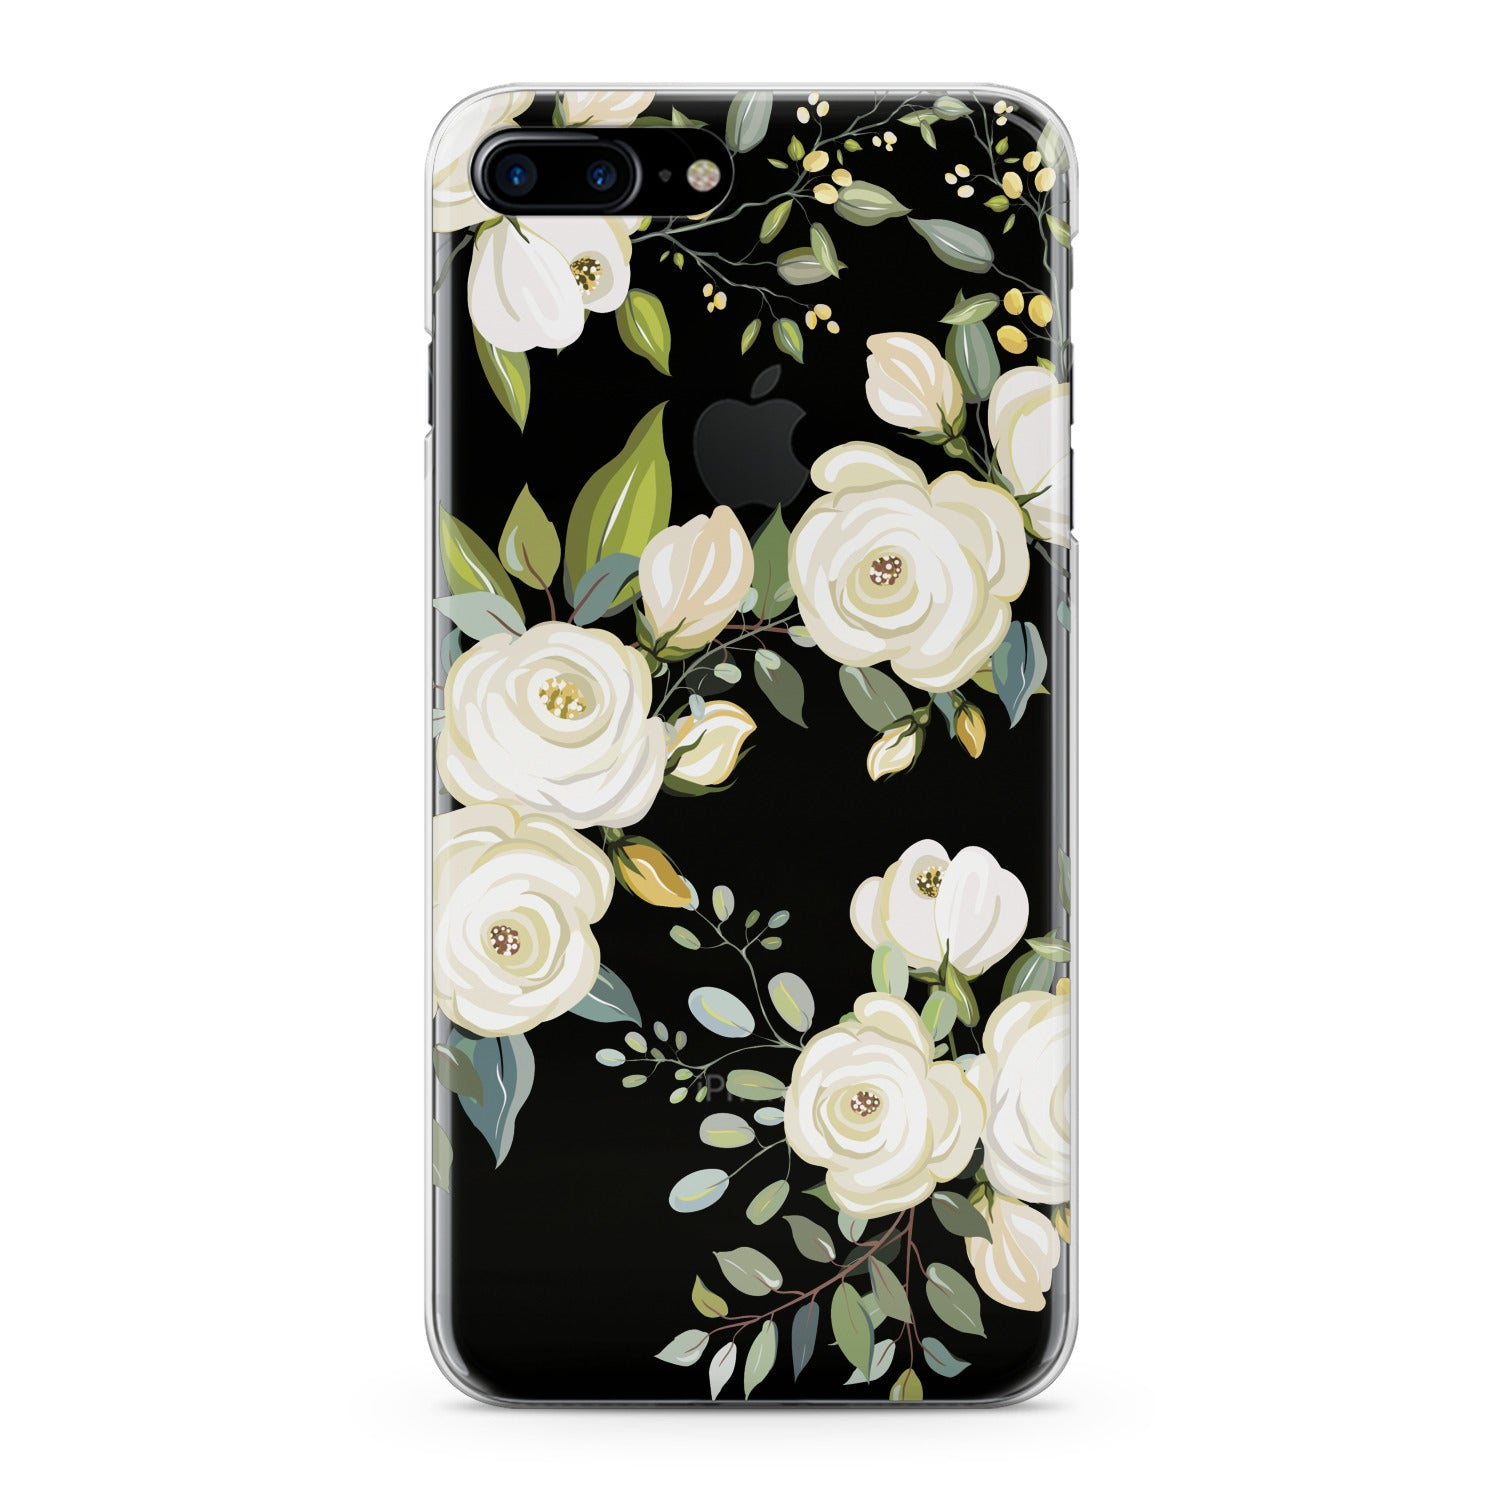 Lex Altern White Roses Phone Case for your iPhone & Android phone.